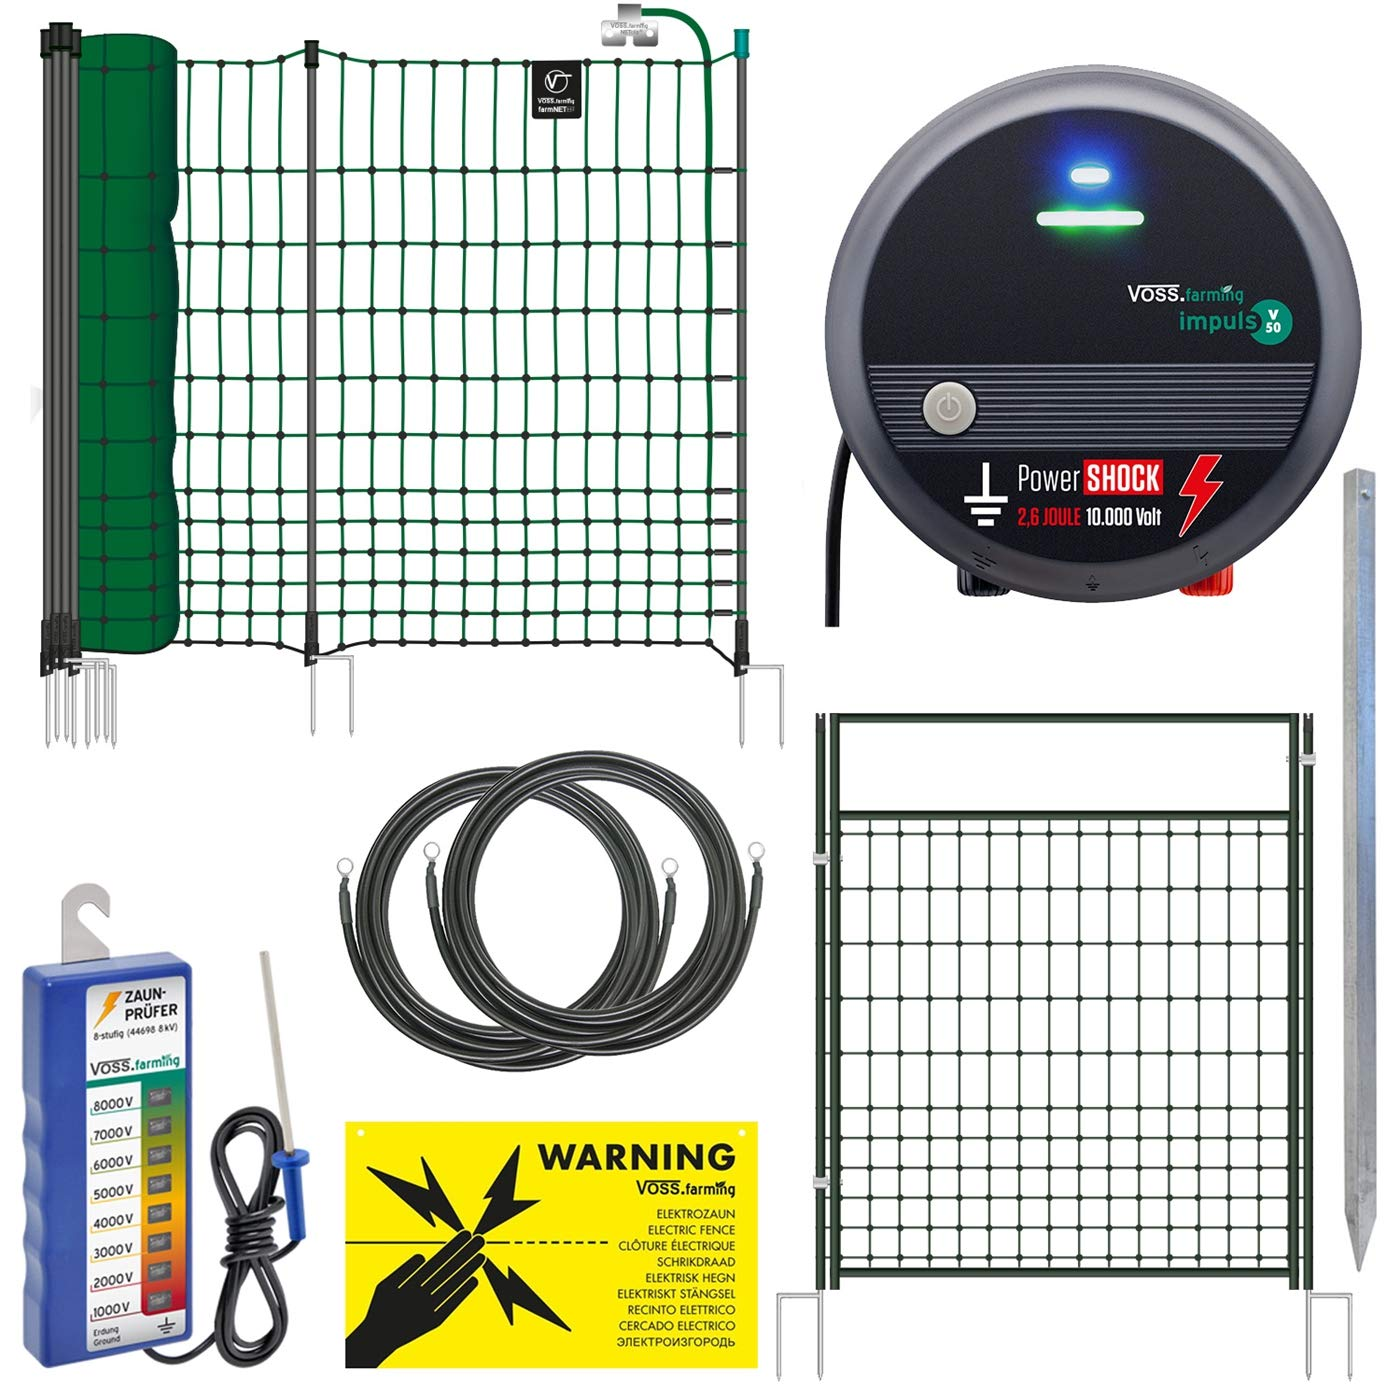 Tester Guy Ropes 230V Mains Energiser VOSS.farming 50m Premium Poultry Electric Fence Kit incl farmNET Netting 2.6 J Anti-Fox Can be Extended to 300m Sign 10,000 V Gate